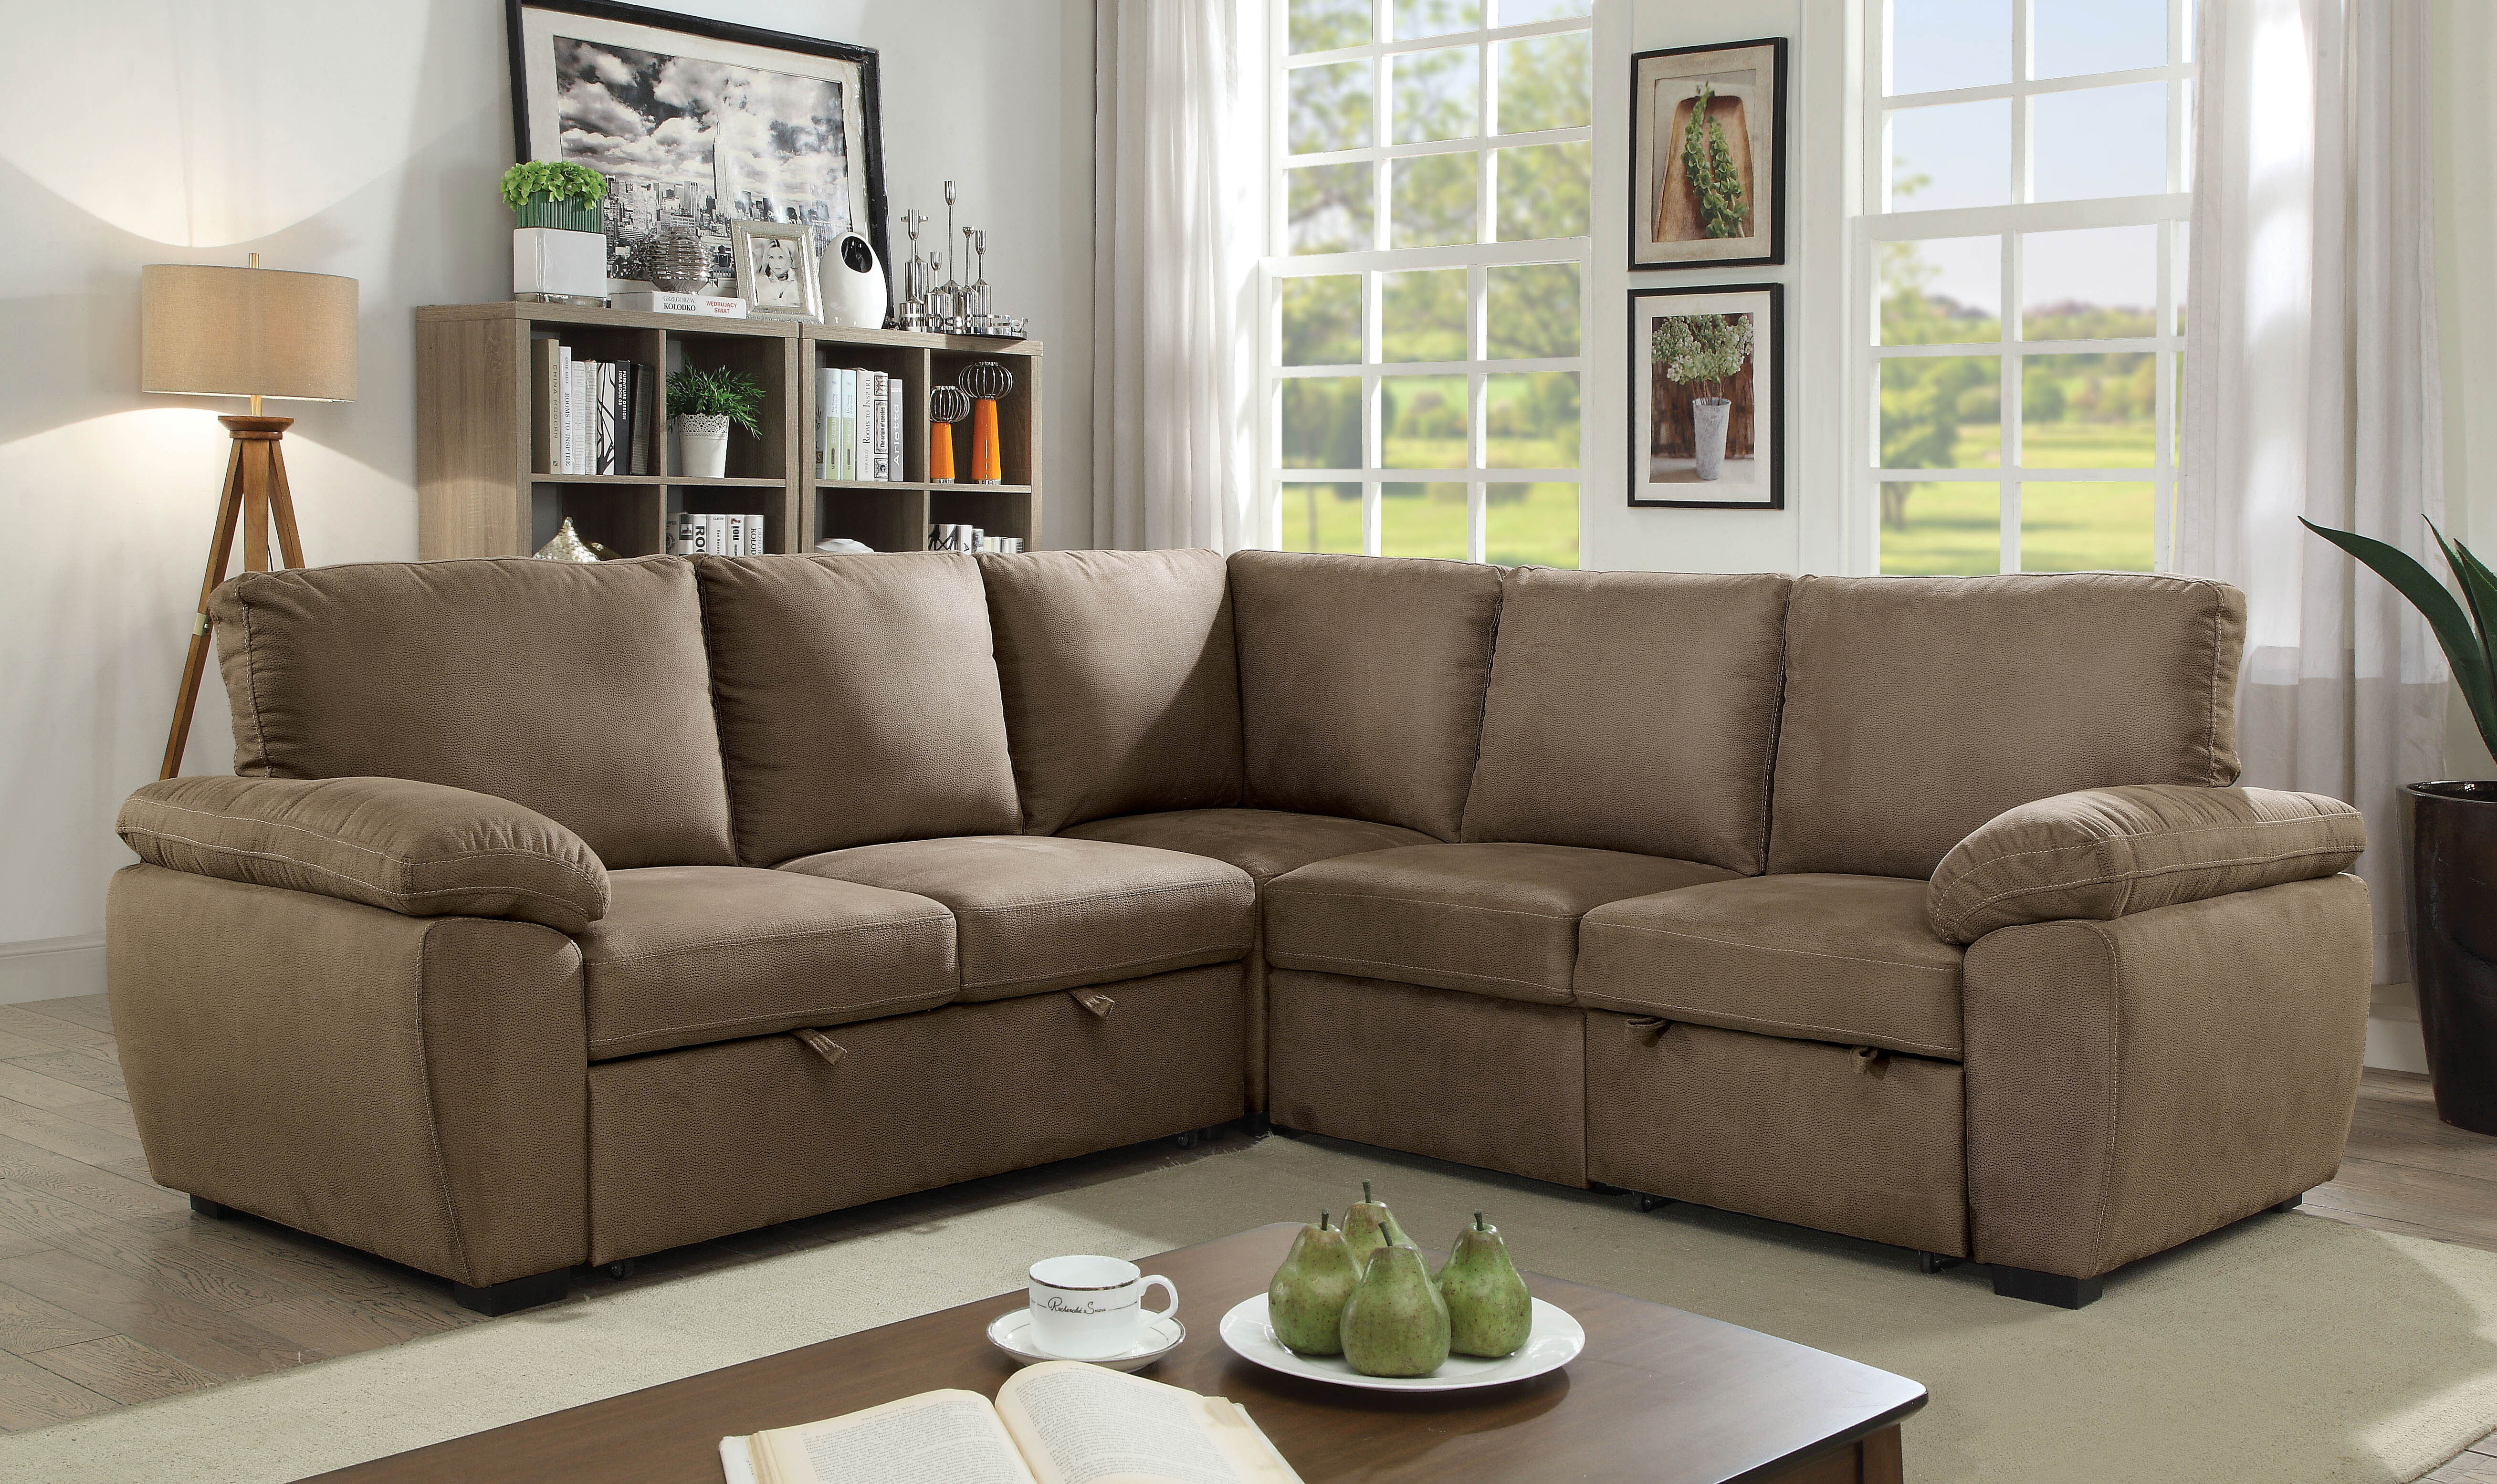 Awe Inspiring Lafave Symmetrical Sleeper Sectional Andrewgaddart Wooden Chair Designs For Living Room Andrewgaddartcom